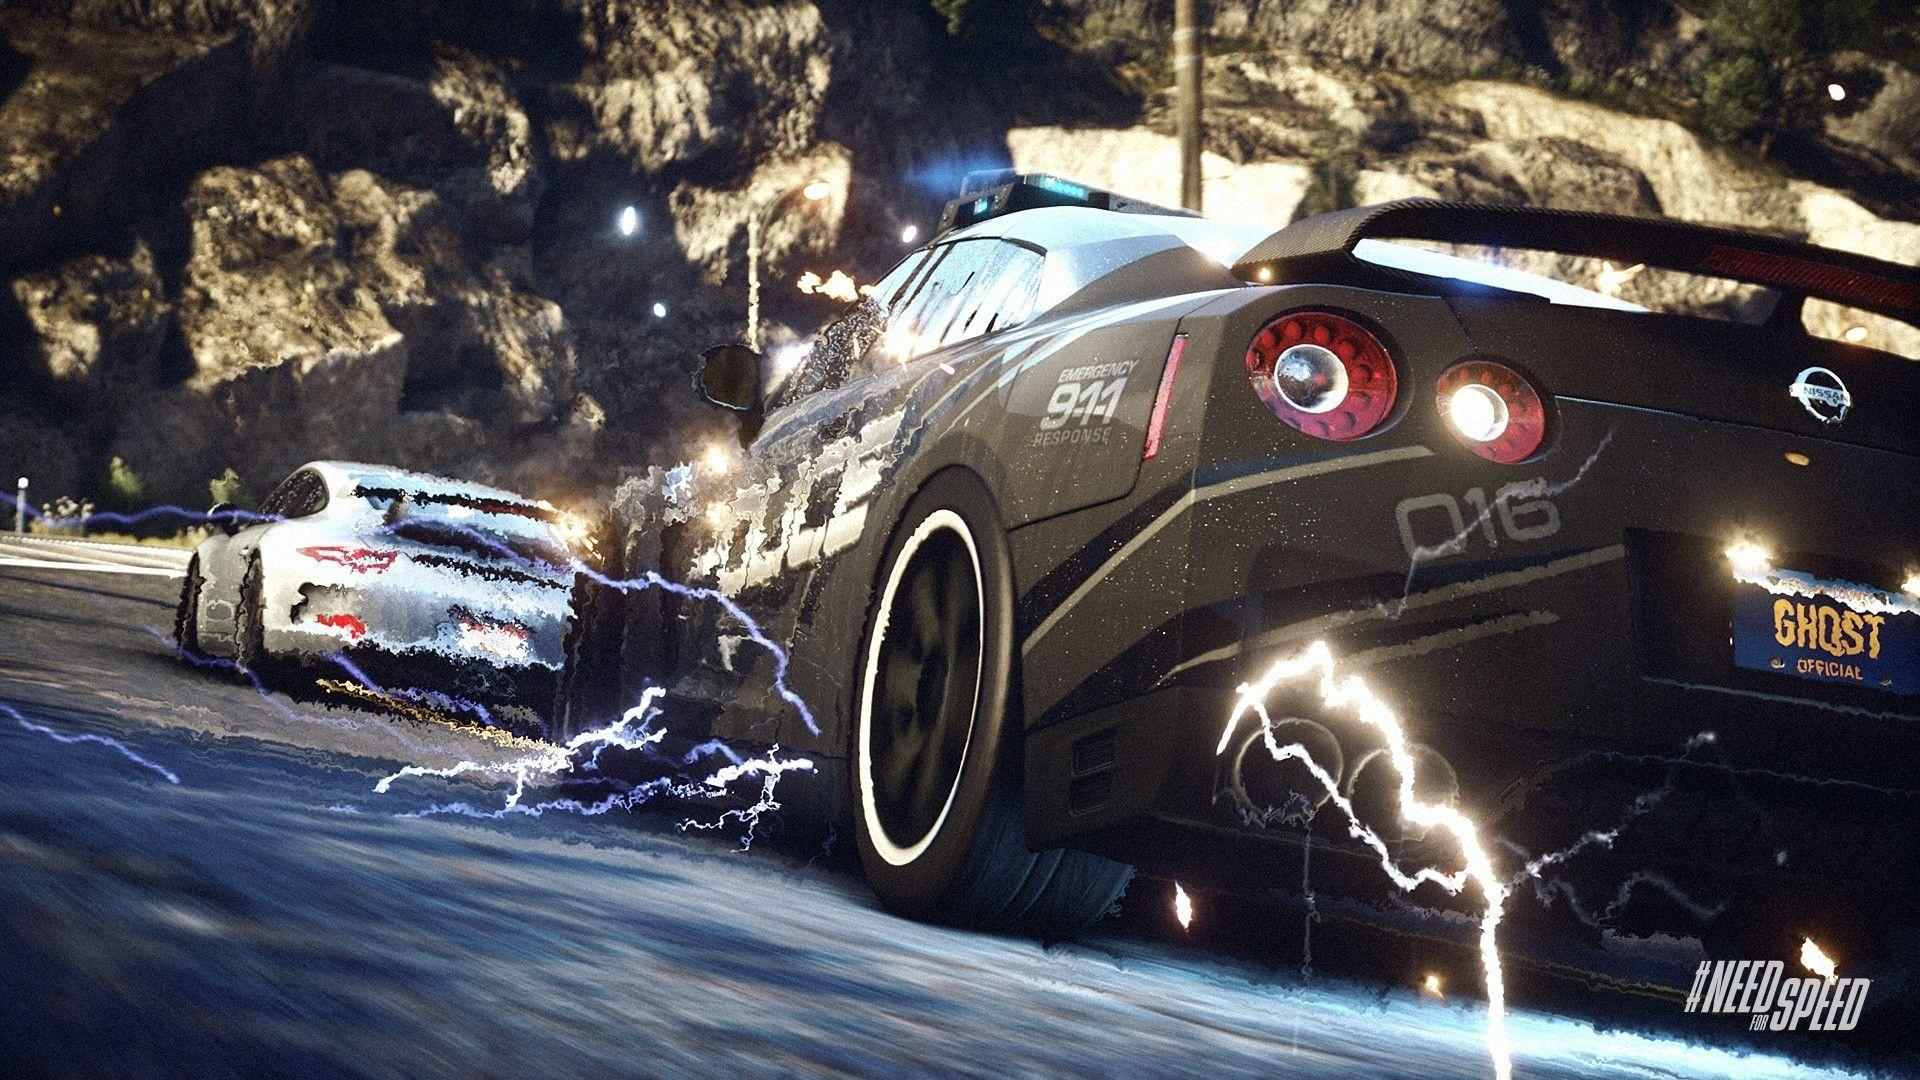 Need for speed games wallpapers wallpaper cave - Speed wallpaper ...